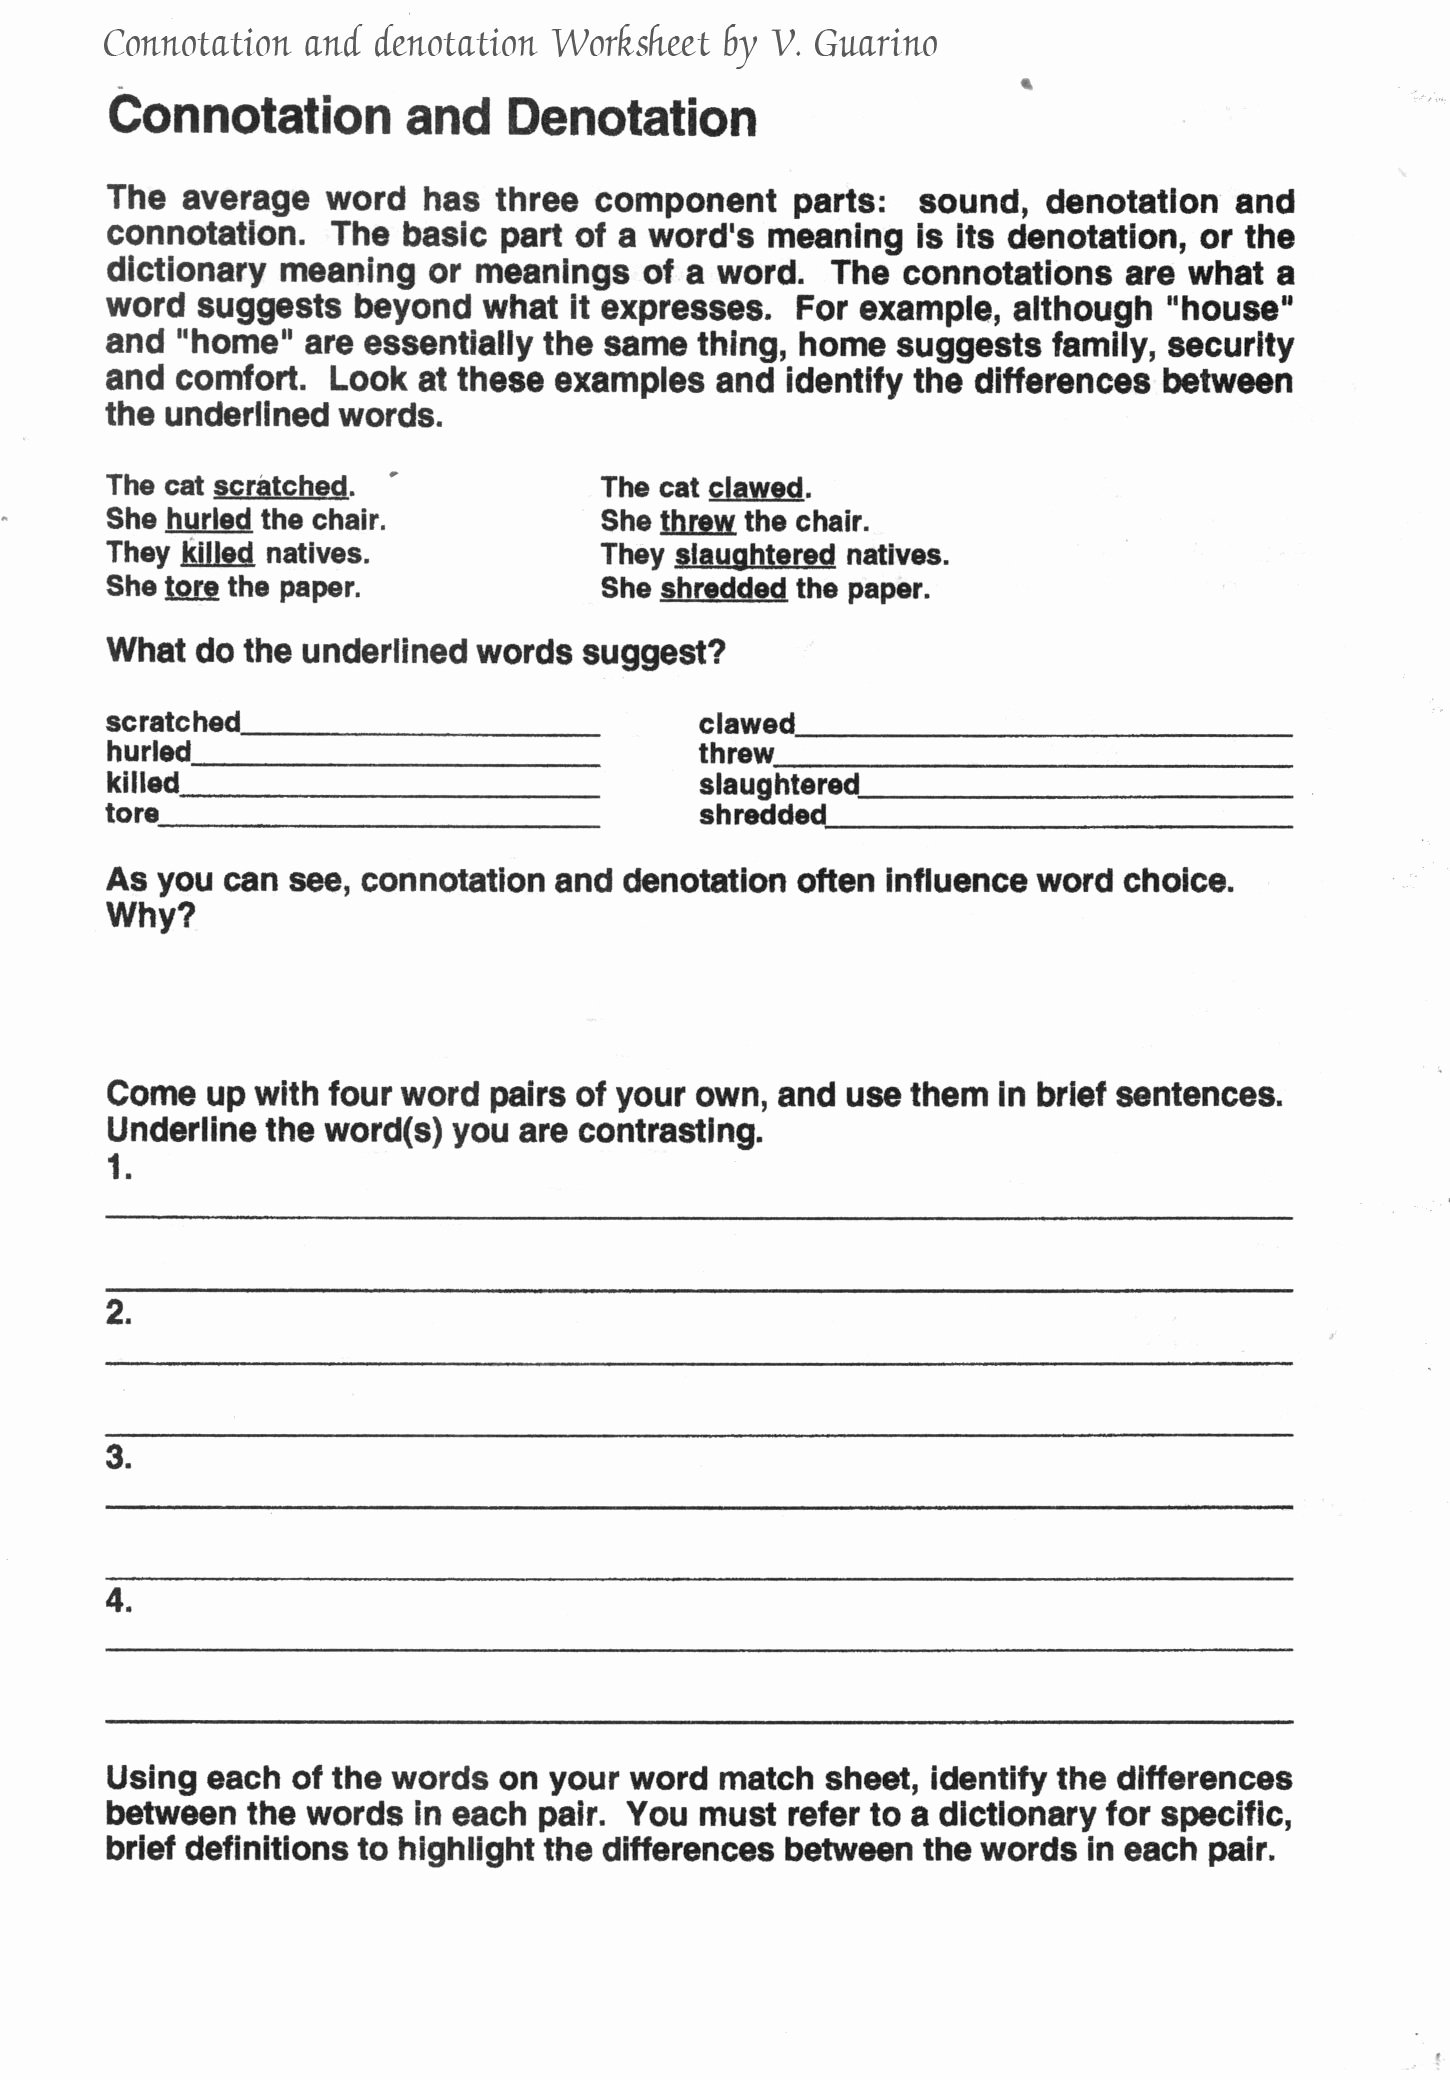 Denotation and Connotation Worksheet Fresh Connotation and Denotation Worksheets for Middle School